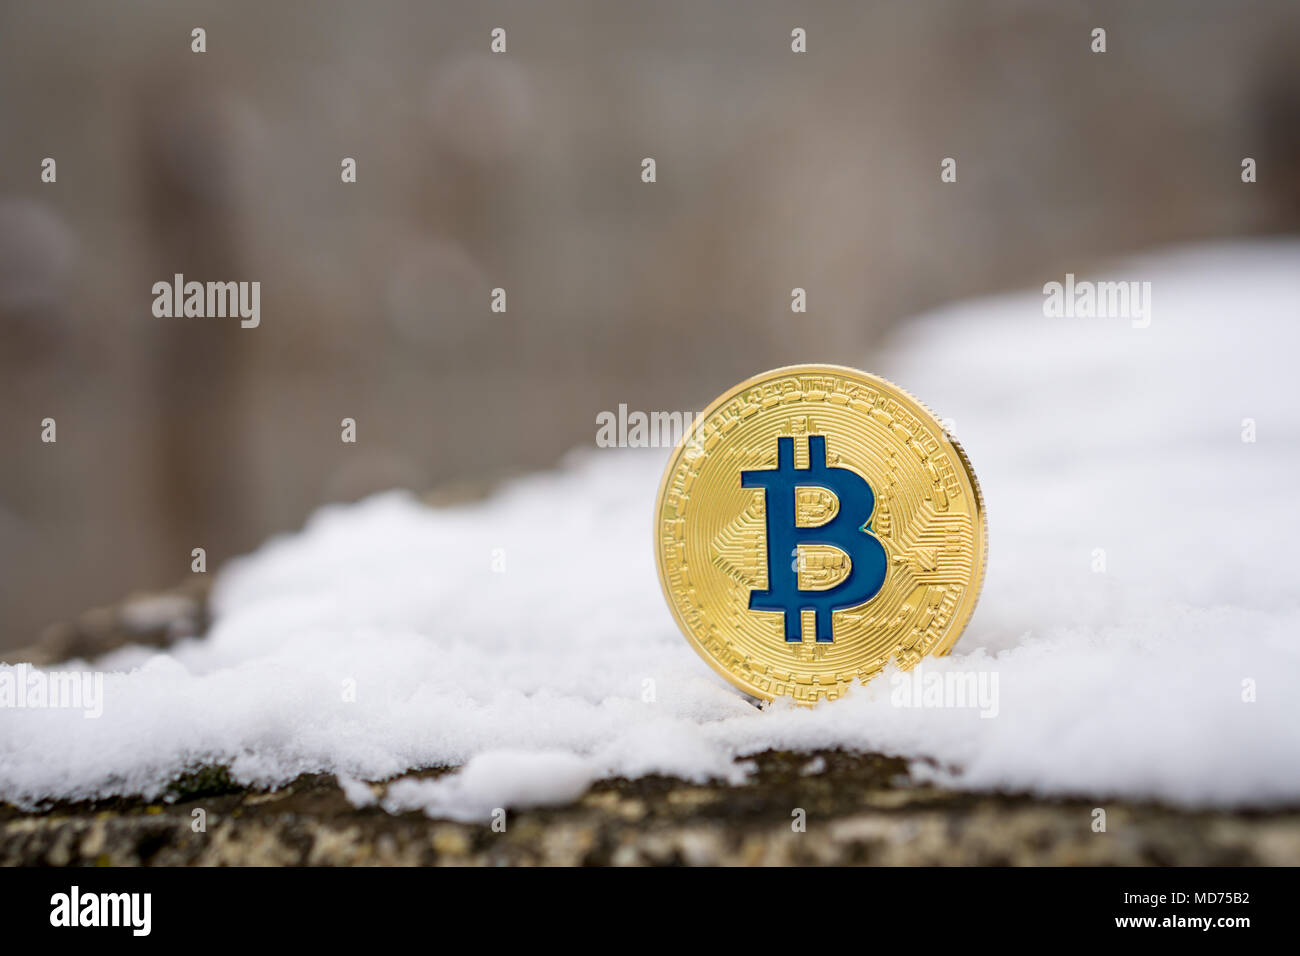 A gold colored Bitcoin placed in snow on concrete. Isolated scene of  cryptocurrency in snow - Stock Image